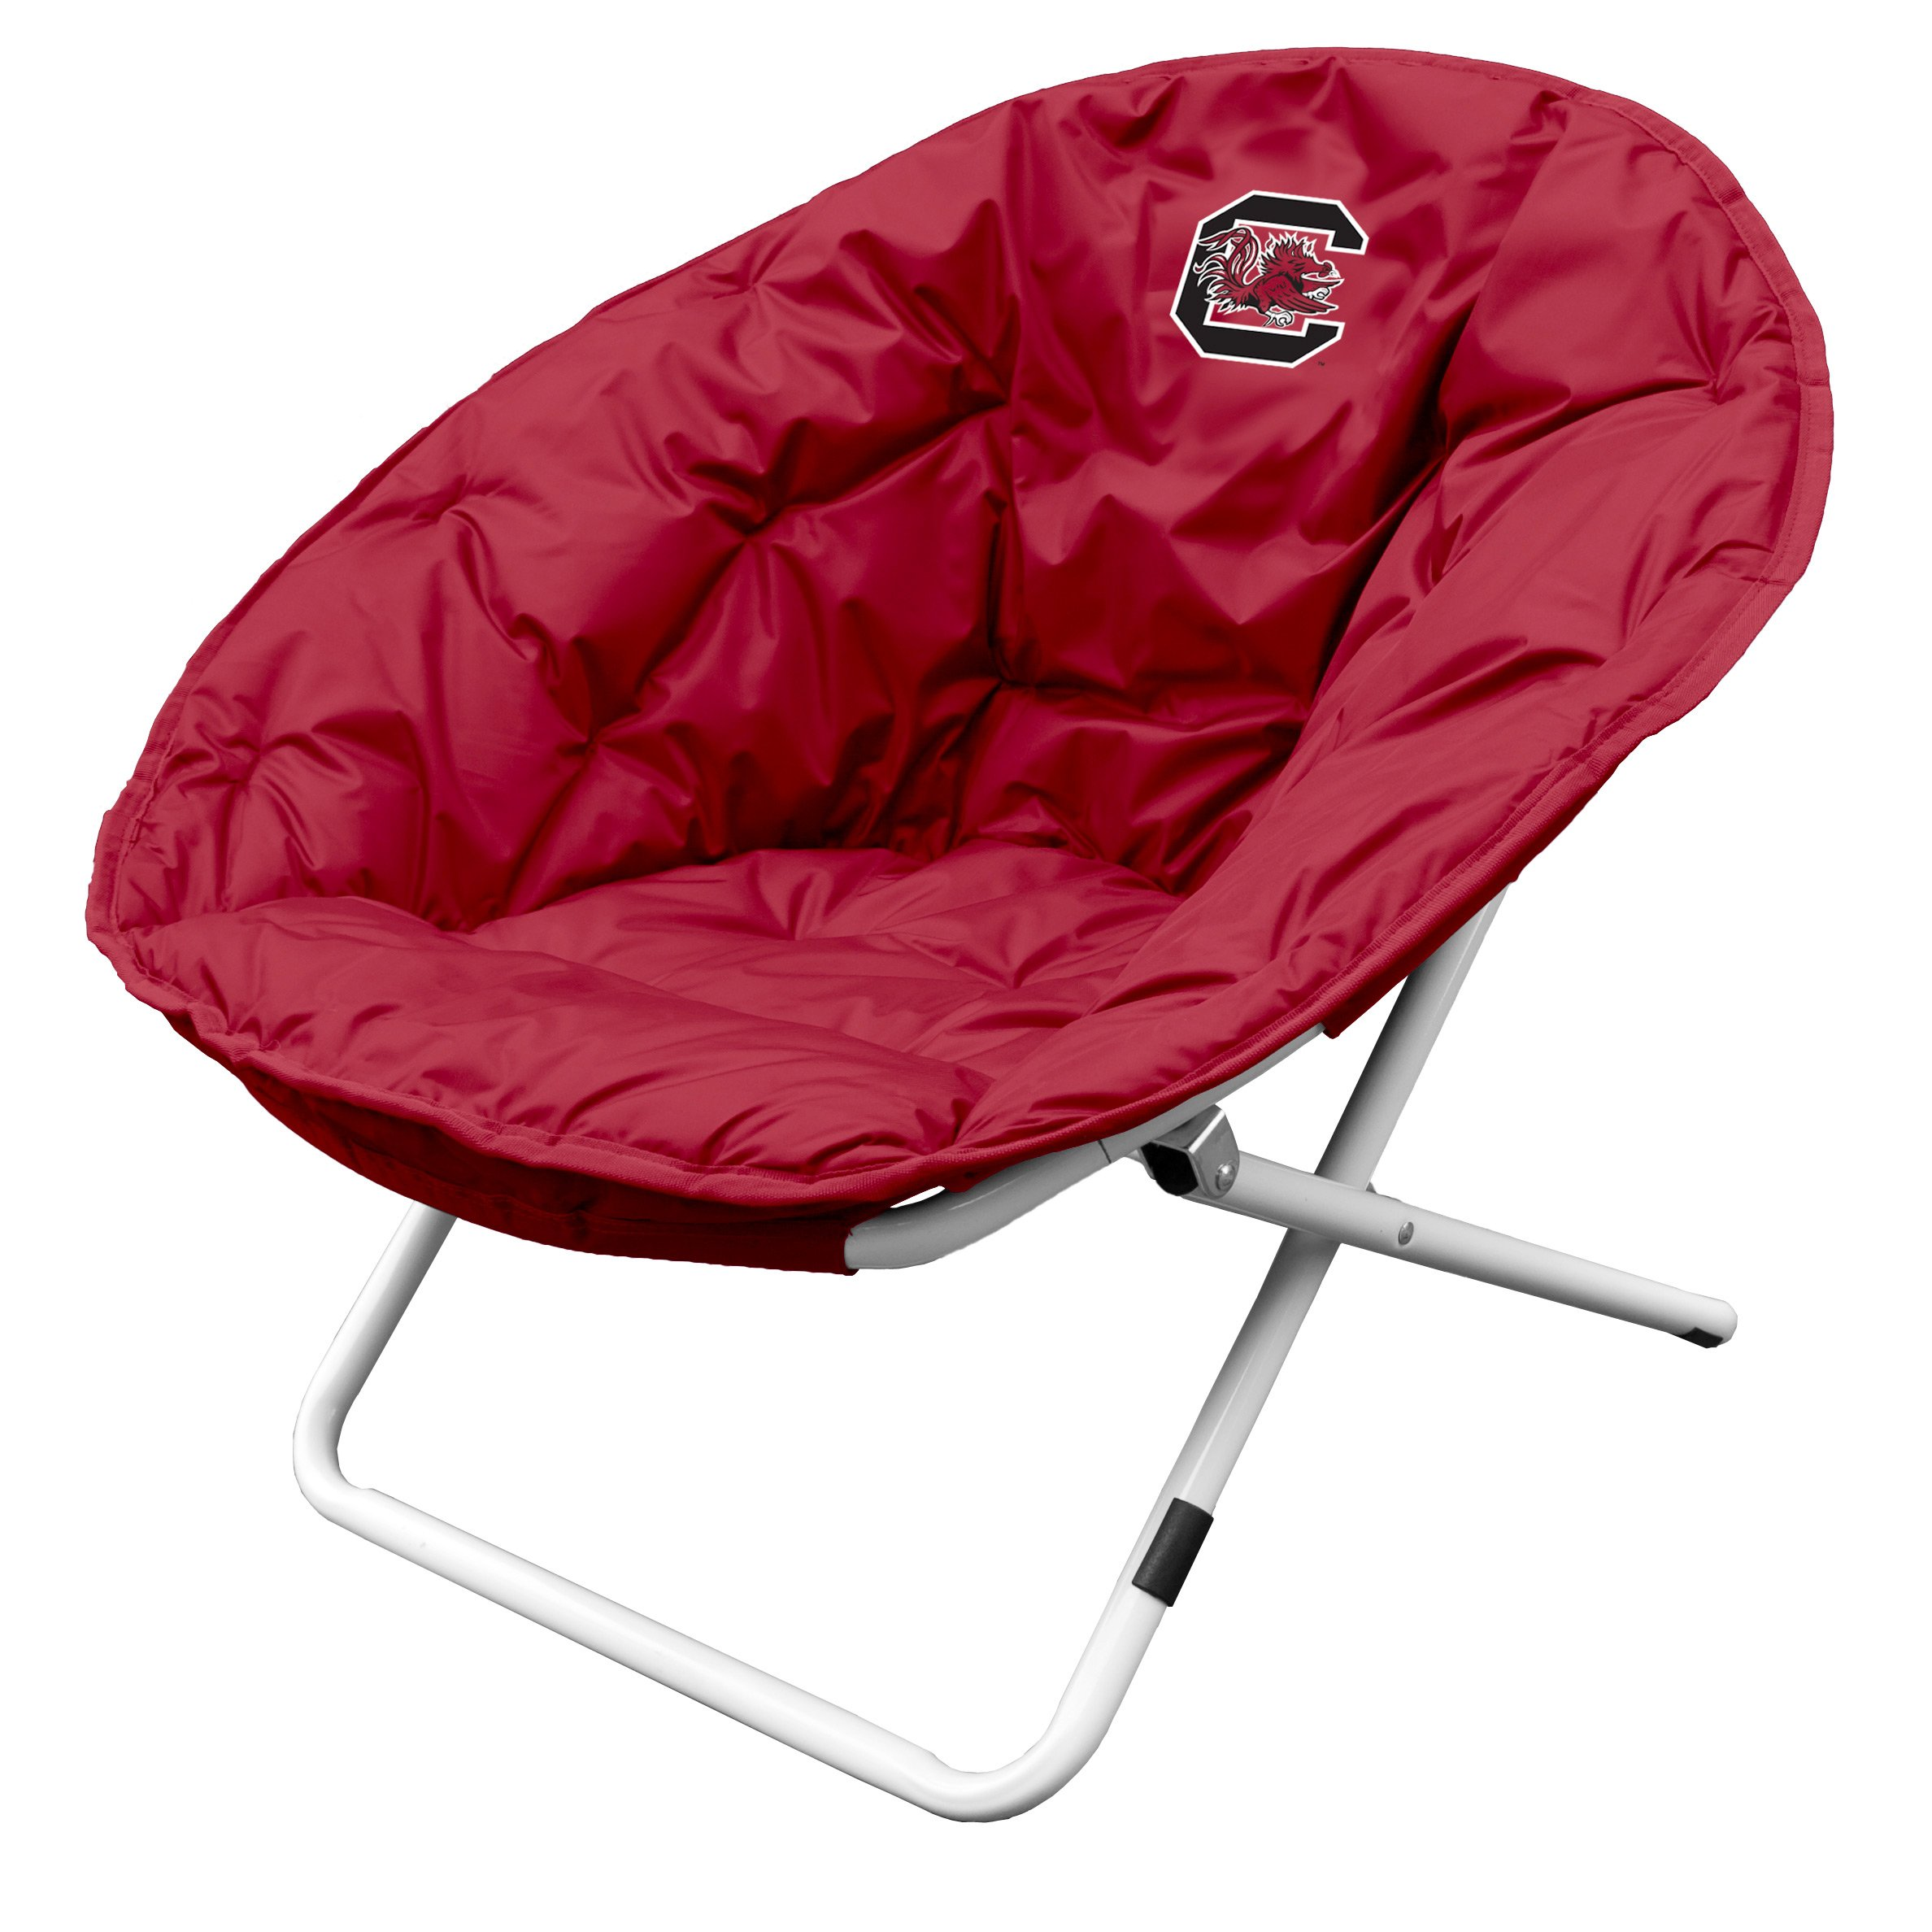 NCAA South Carolina Fighting Gamecocks Sphere Chair by Logo Brands (Image #1)